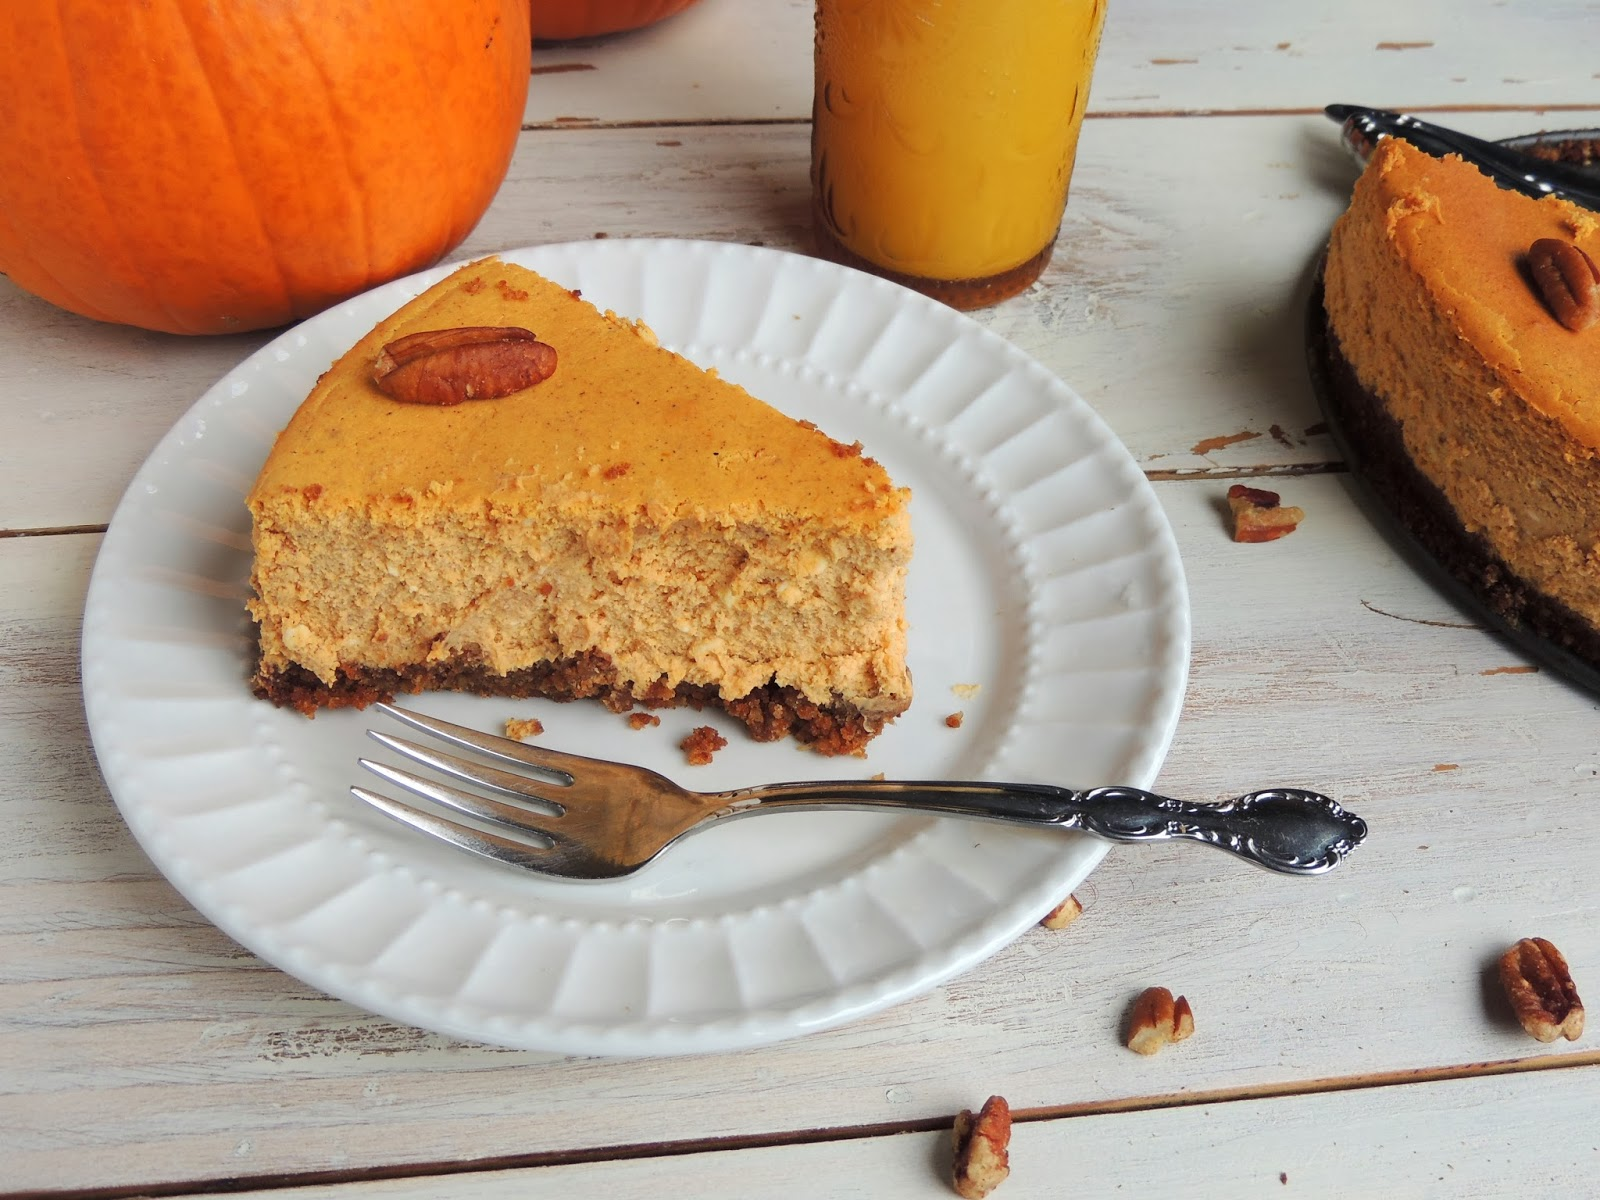 ... Pumpkin Cheesecake with a Pecan Gingersnap Crust and Halloween Rants